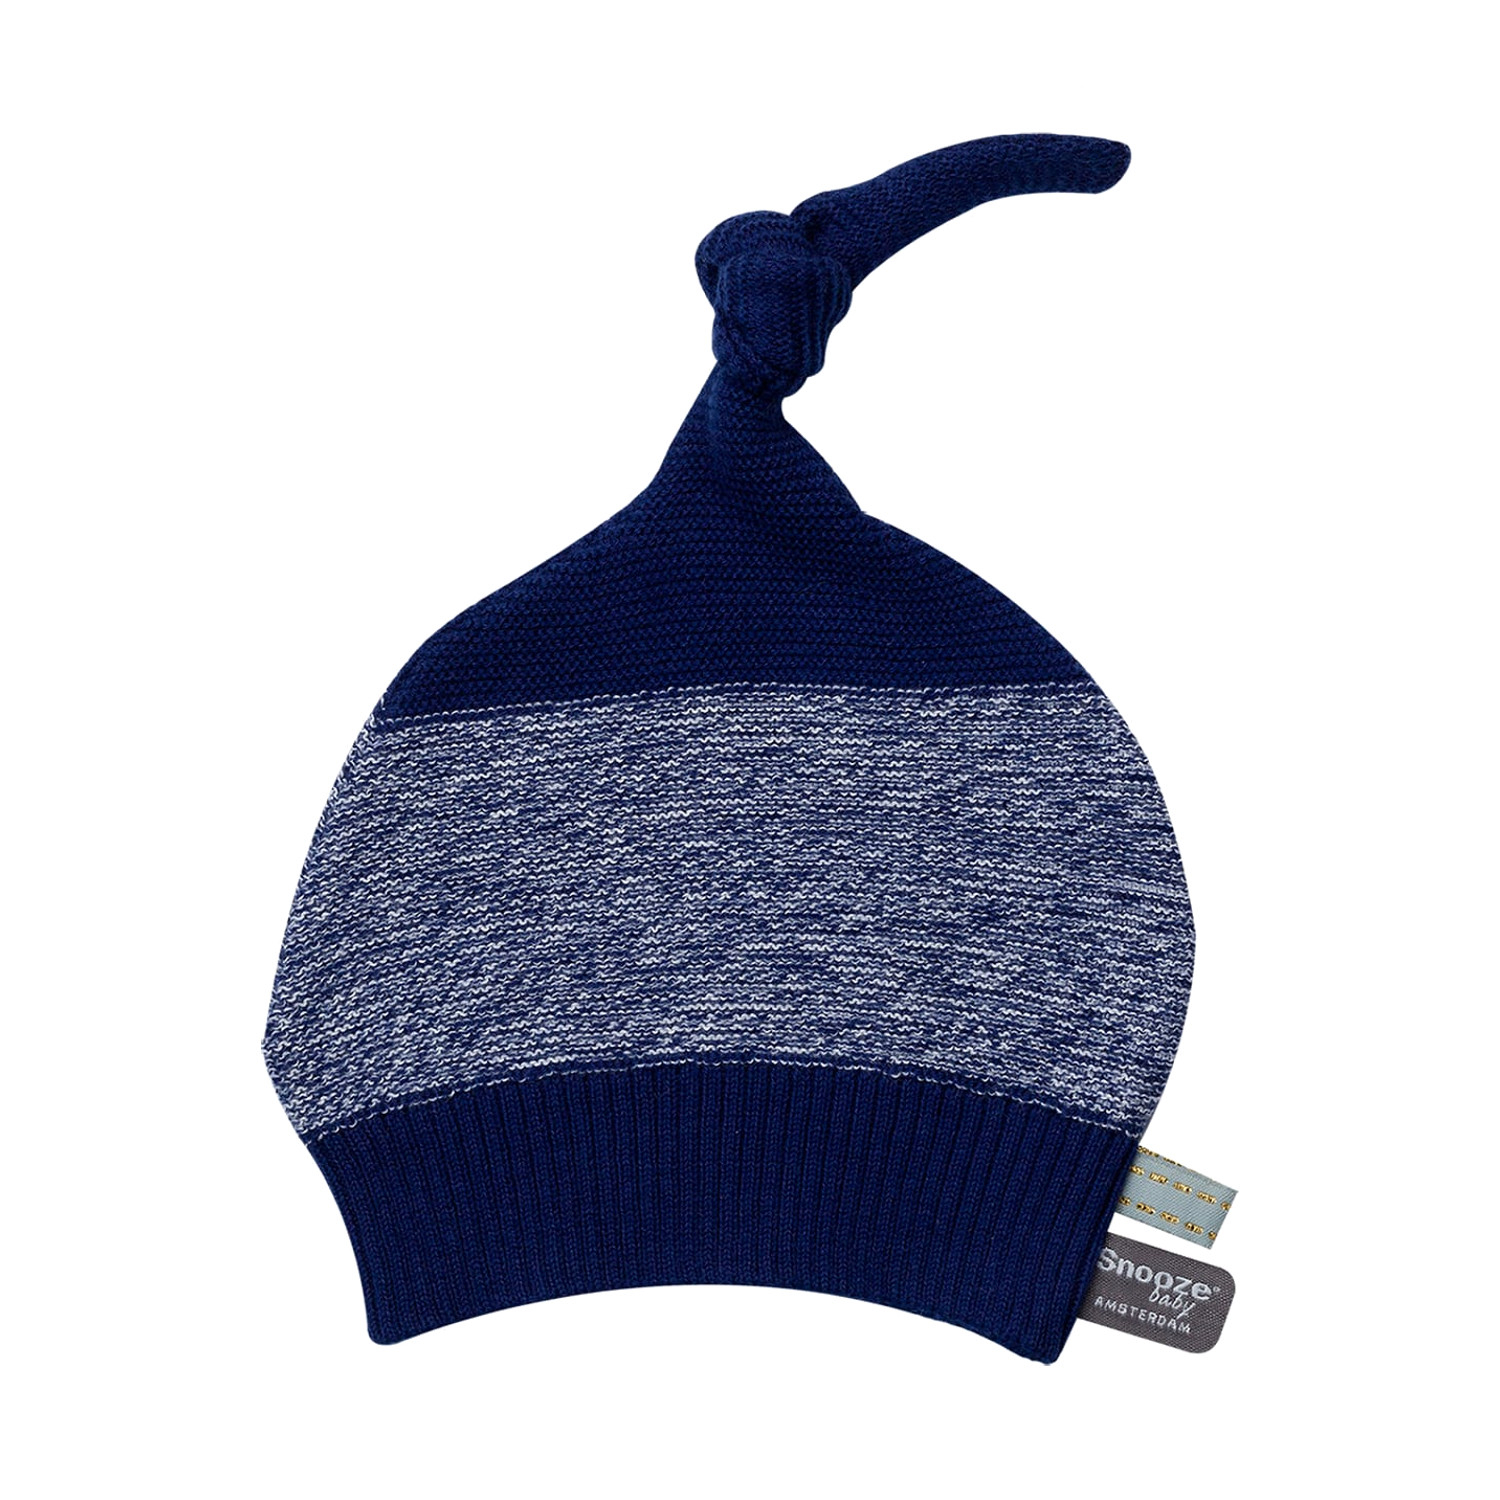 Snoozebaby Knitted Muts Indigo Blue